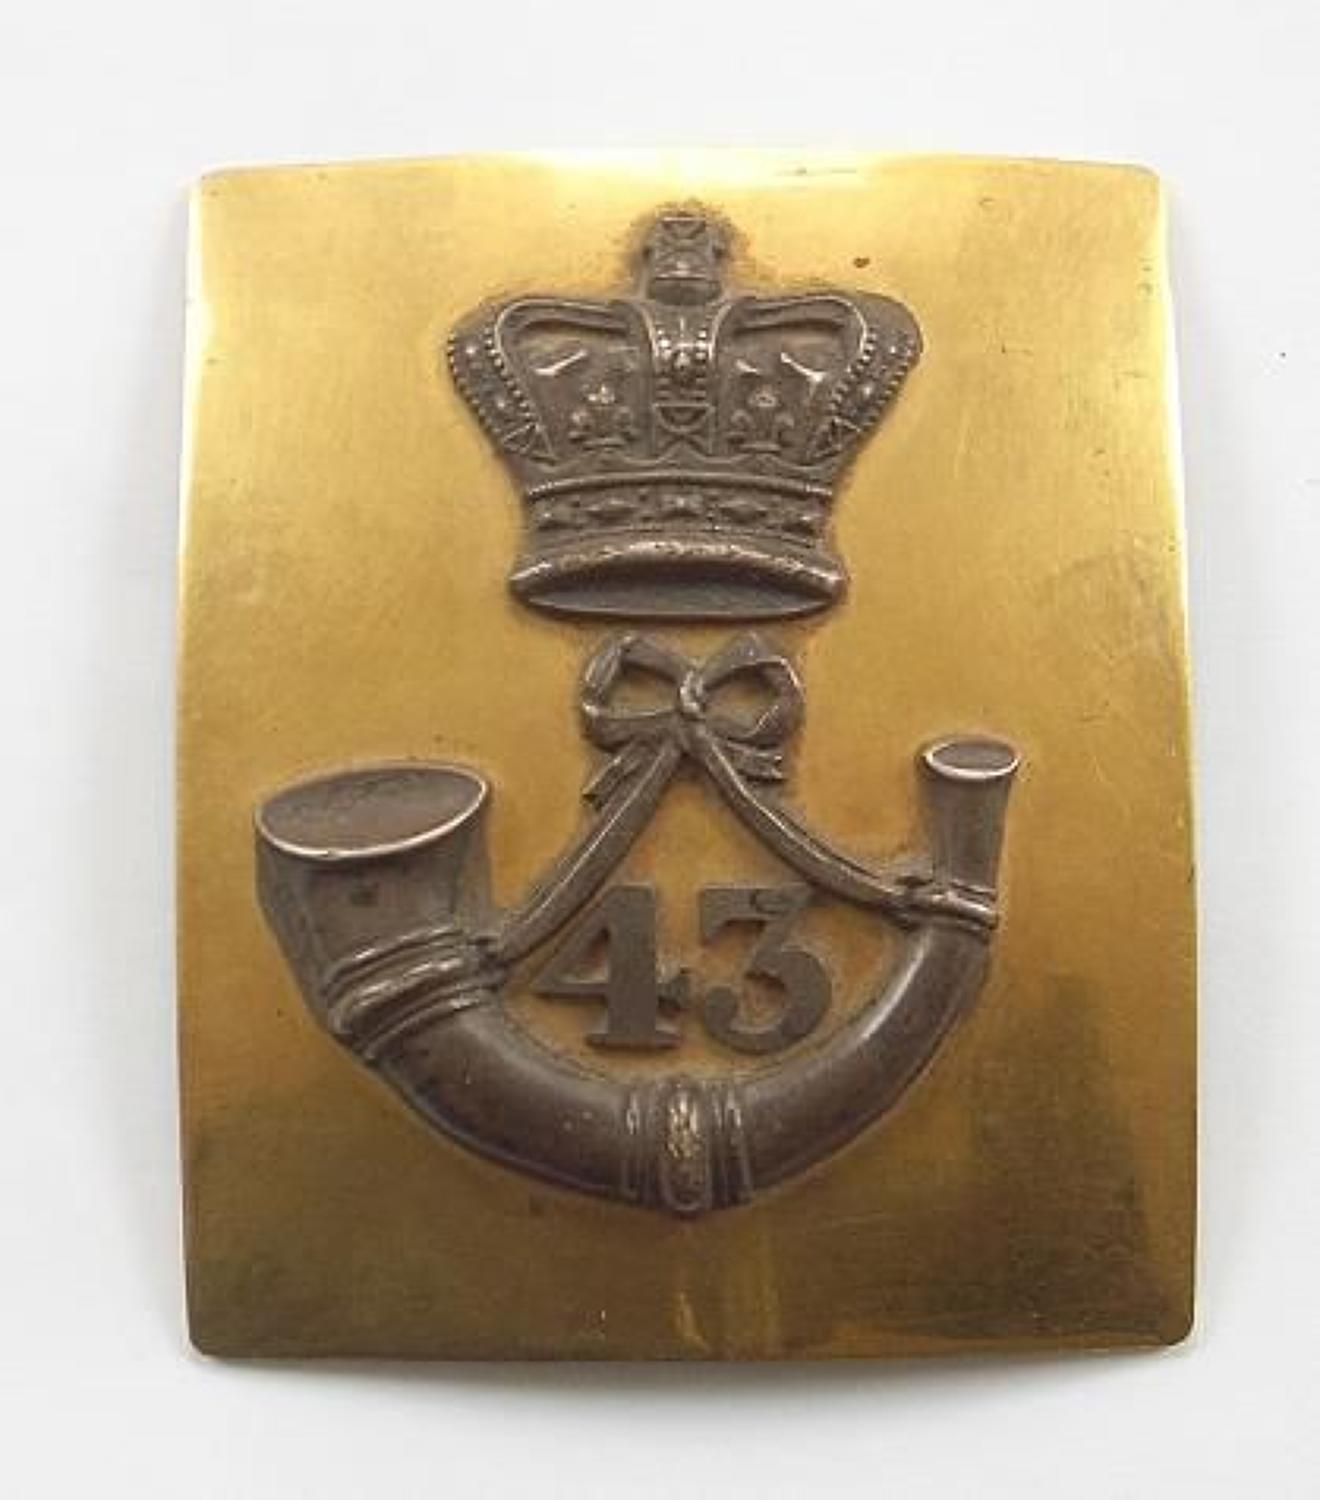 43rd Foot (Monmouthshire) Officer's pre 1855 shoulder belt plate